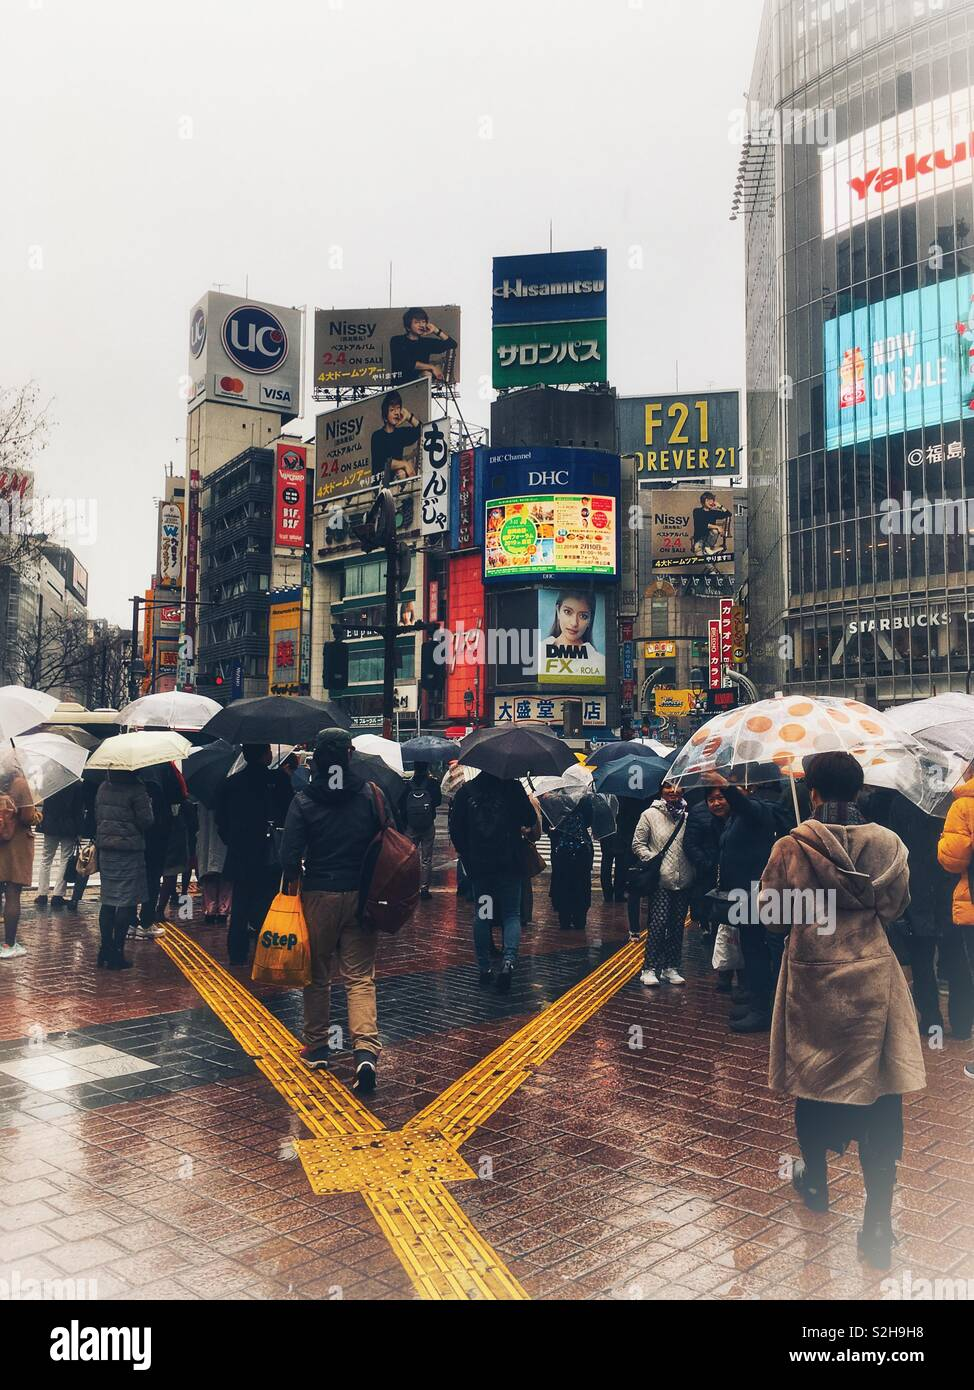 Famous Shibuya Scramble Crossing on a Rainy Day from Pedestrian Perspective - Stock Image